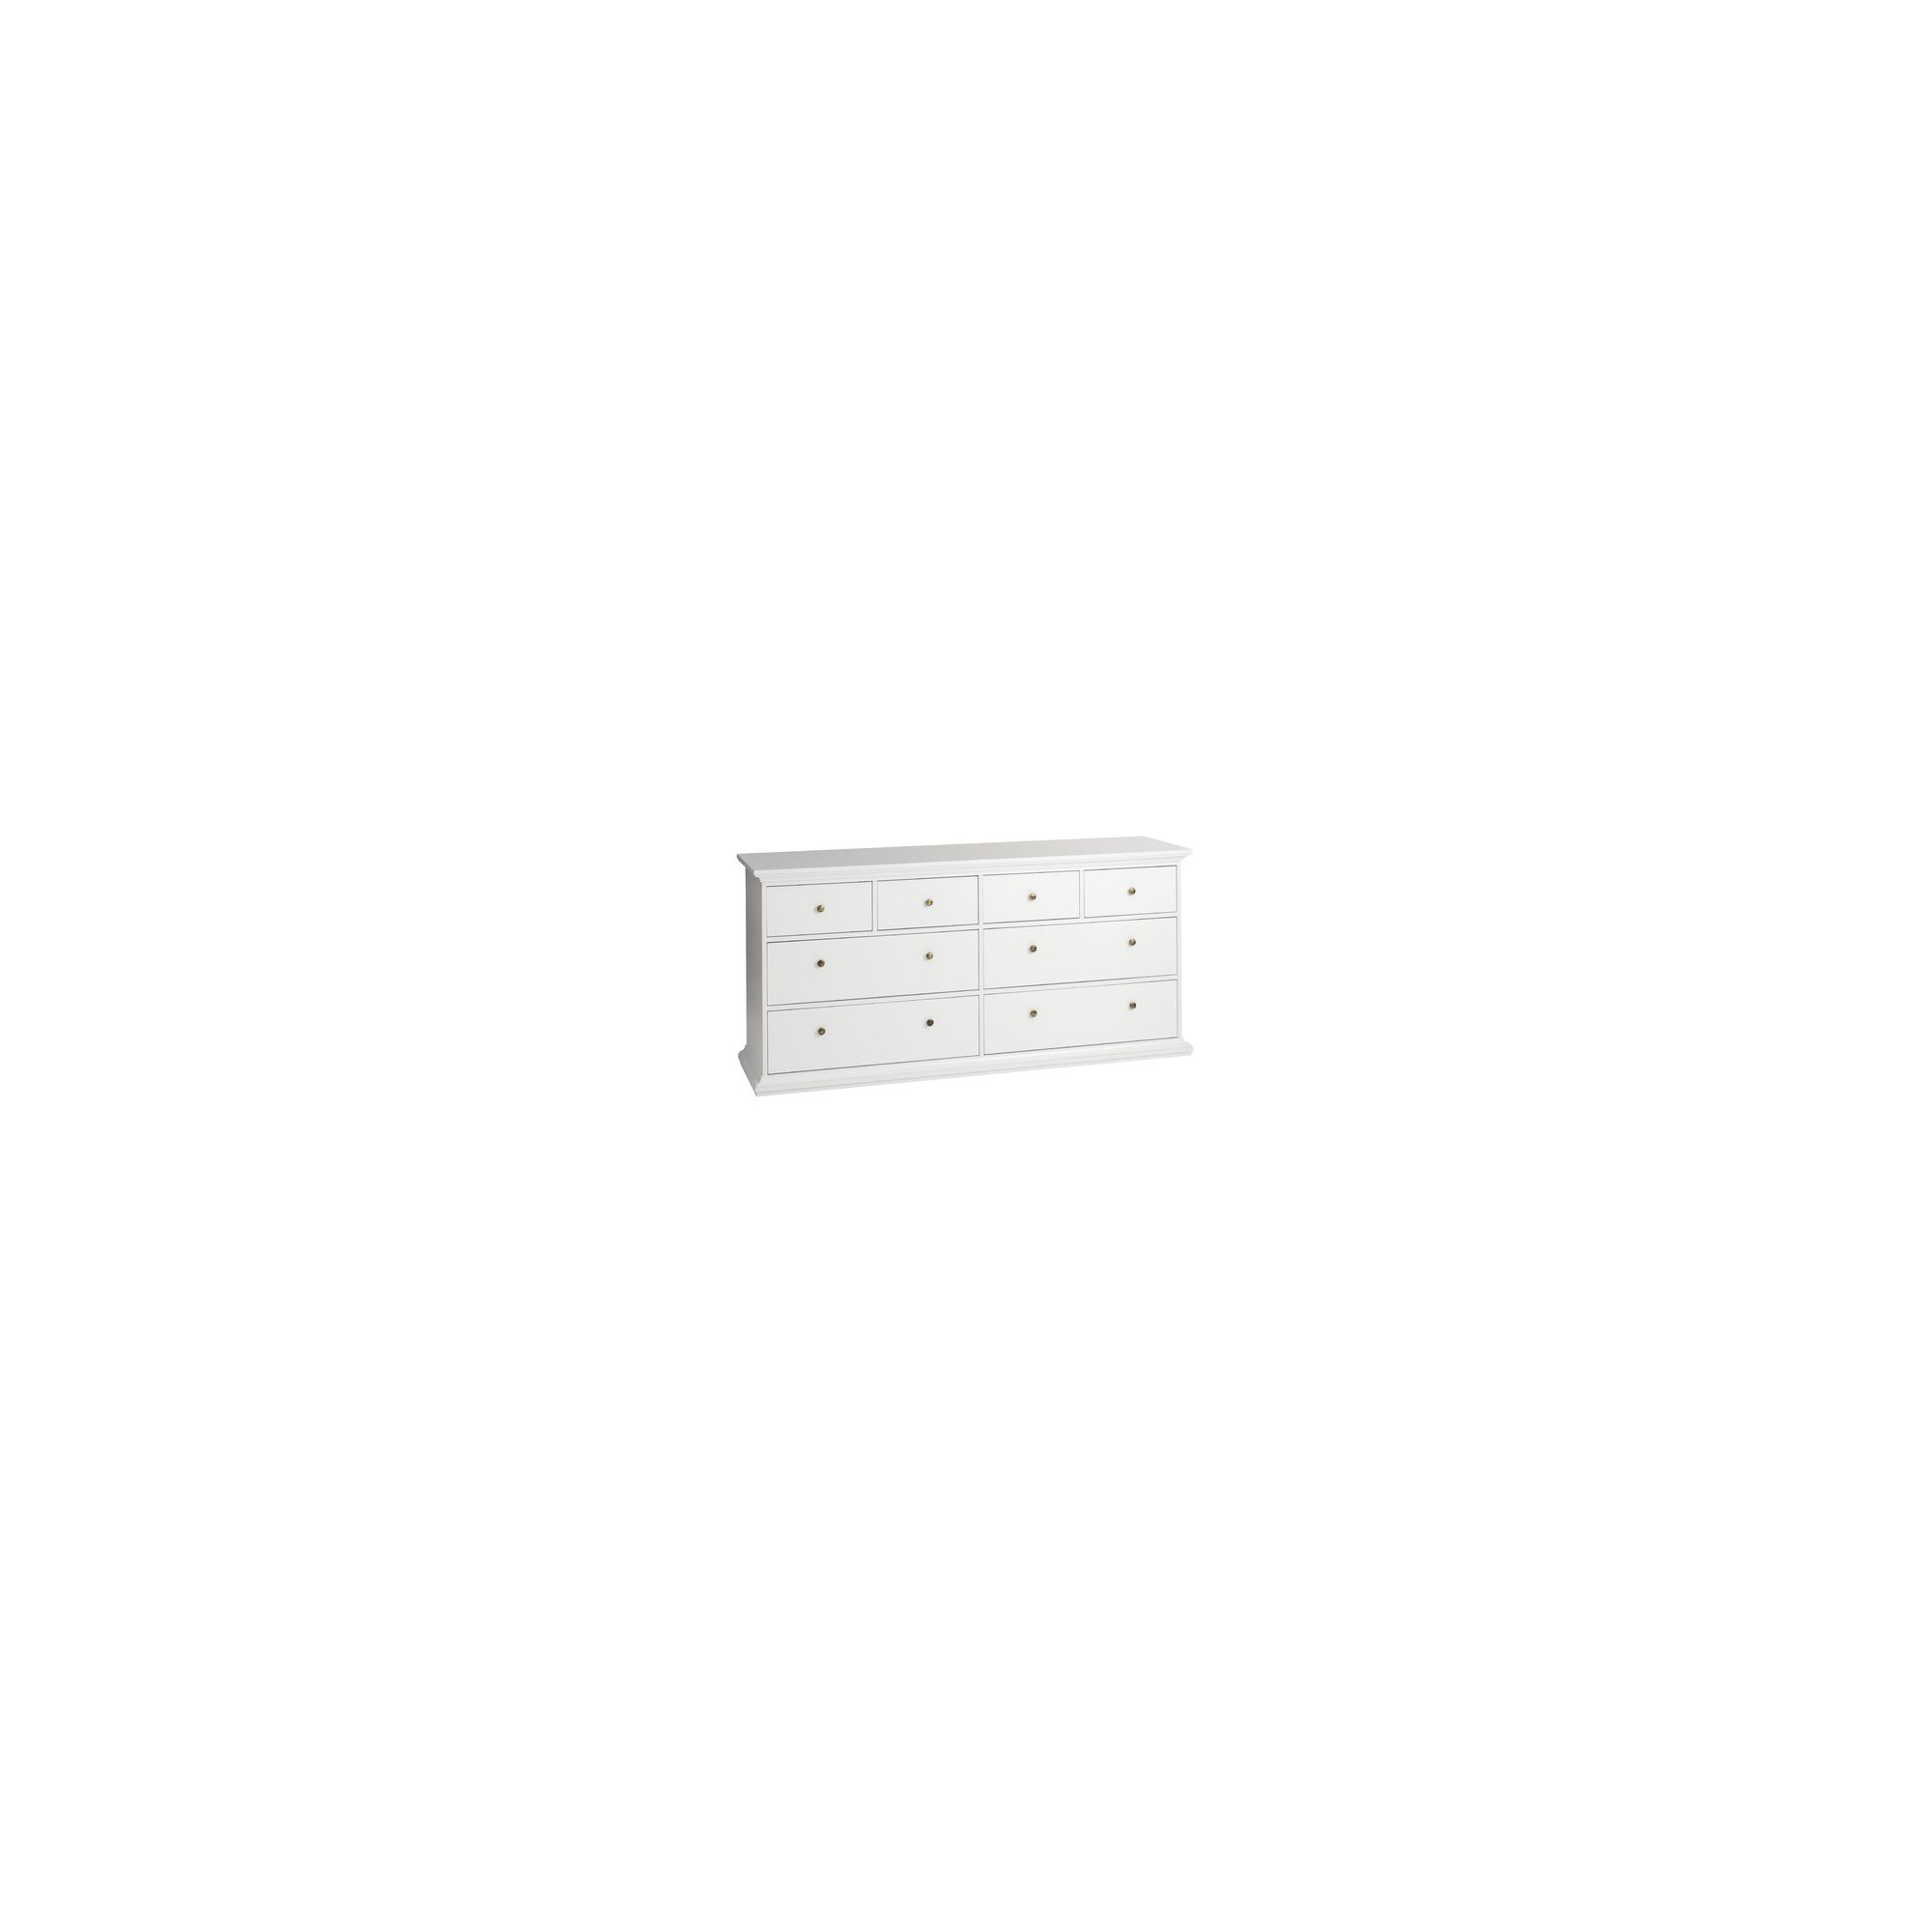 Tvilum Paris Eight Drawer Chest in White at Tesco Direct